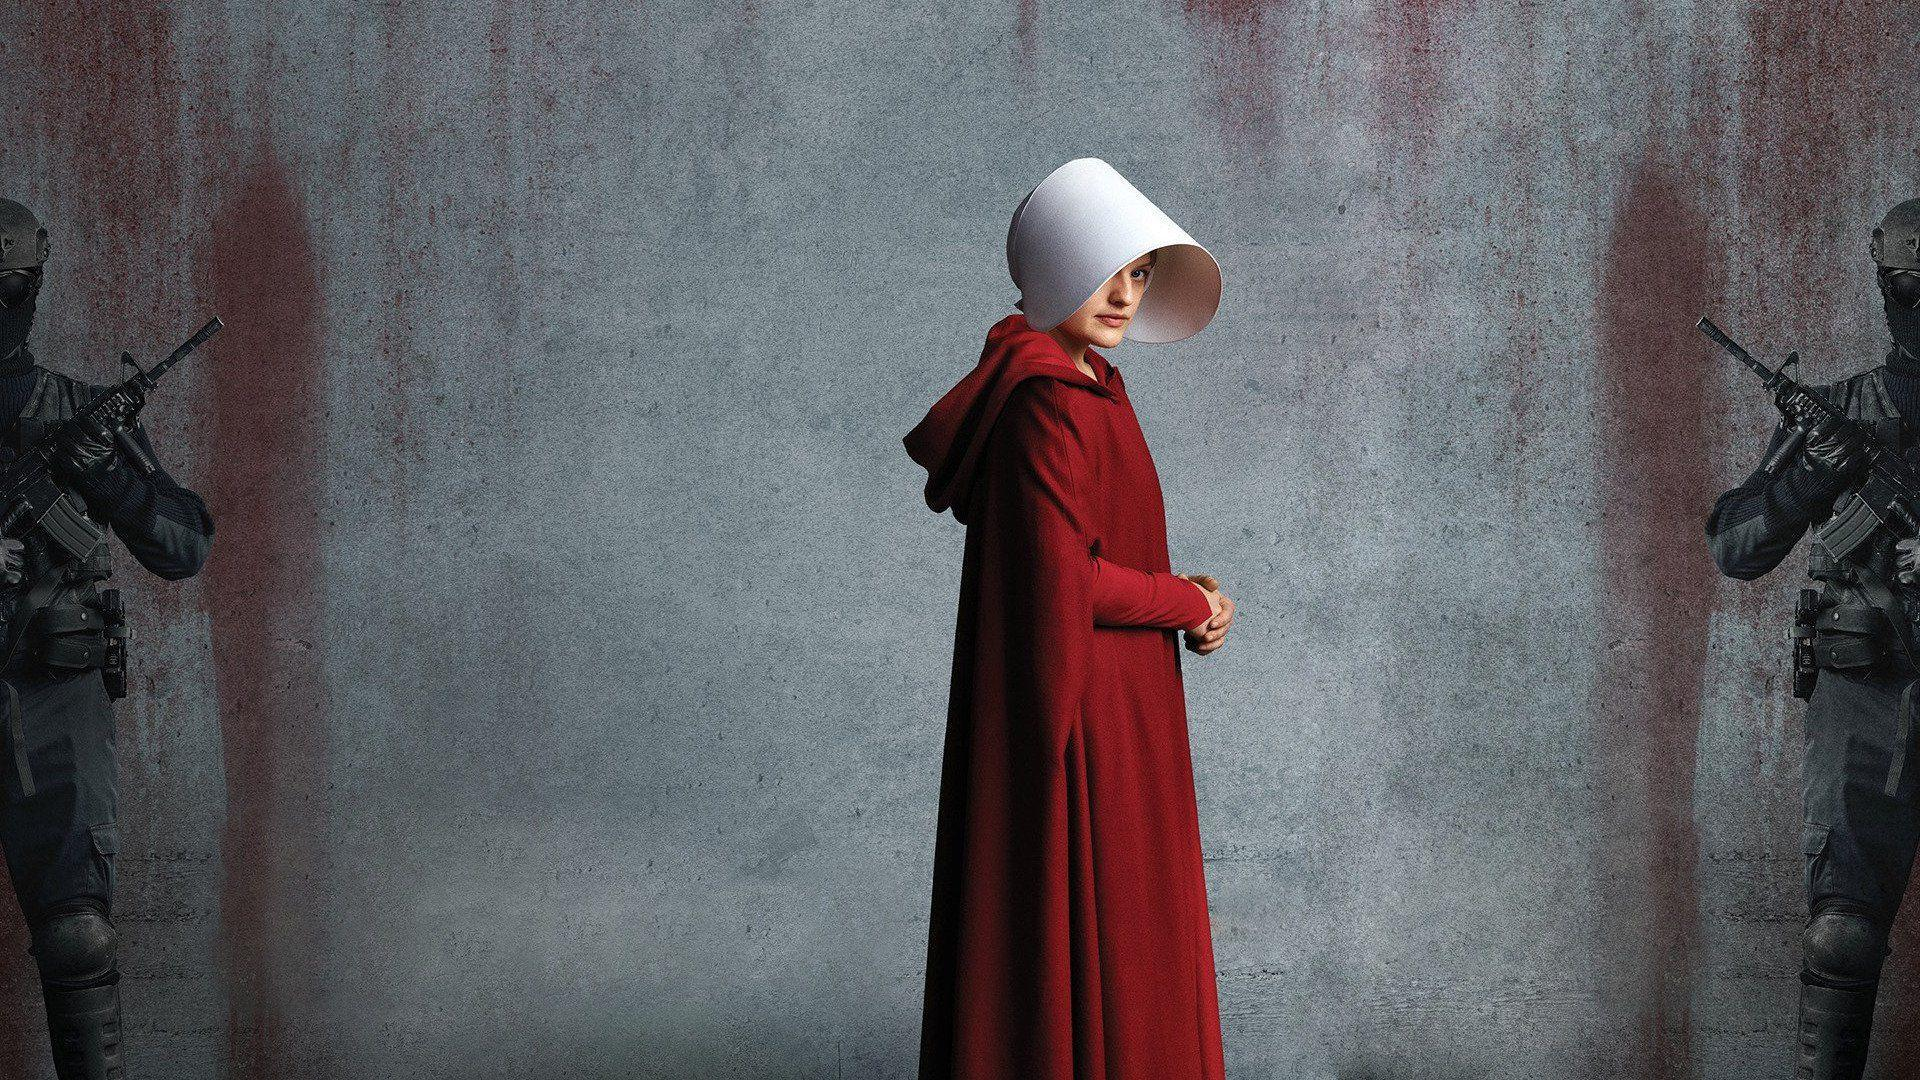 Behind-The-Scenes of The Handmaid's Tale | Friend of a Friend